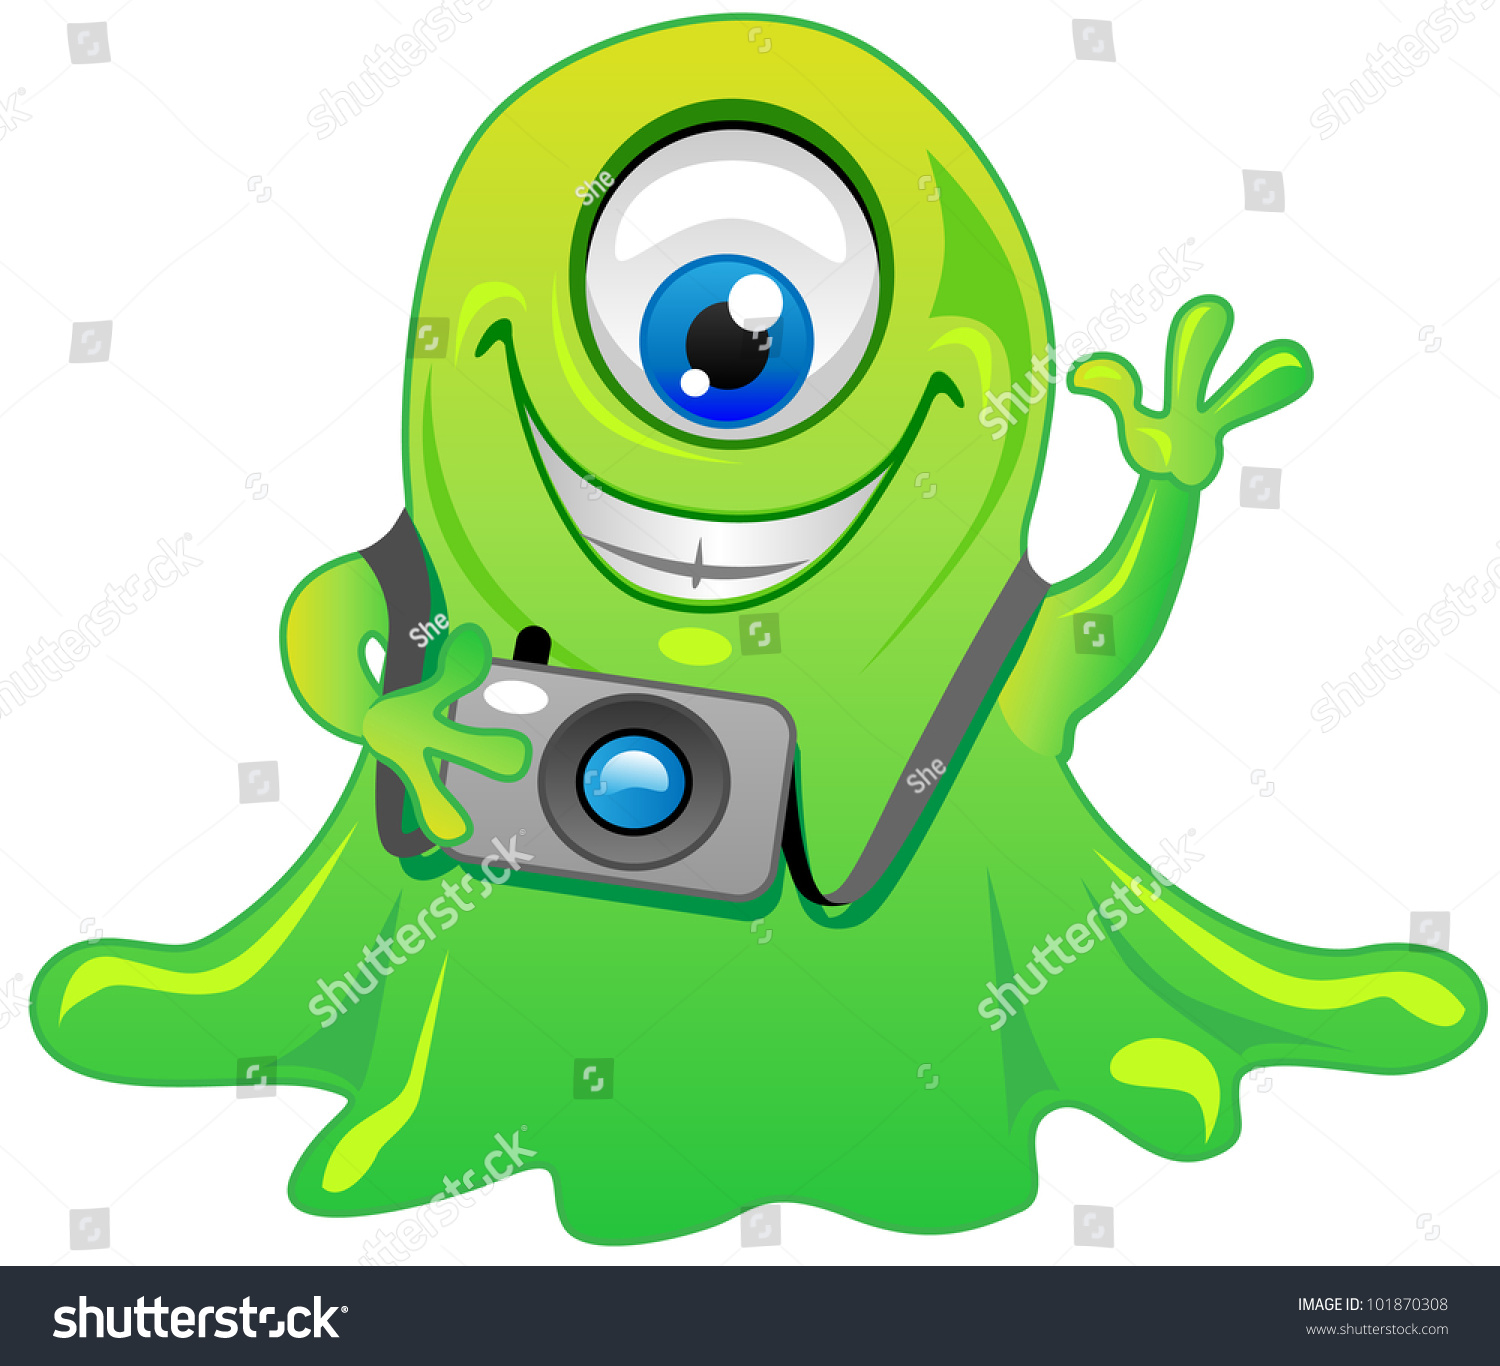 hight resolution of cute friendly green one eye slime alien monster cartoon character with photo camera cool for t shirts